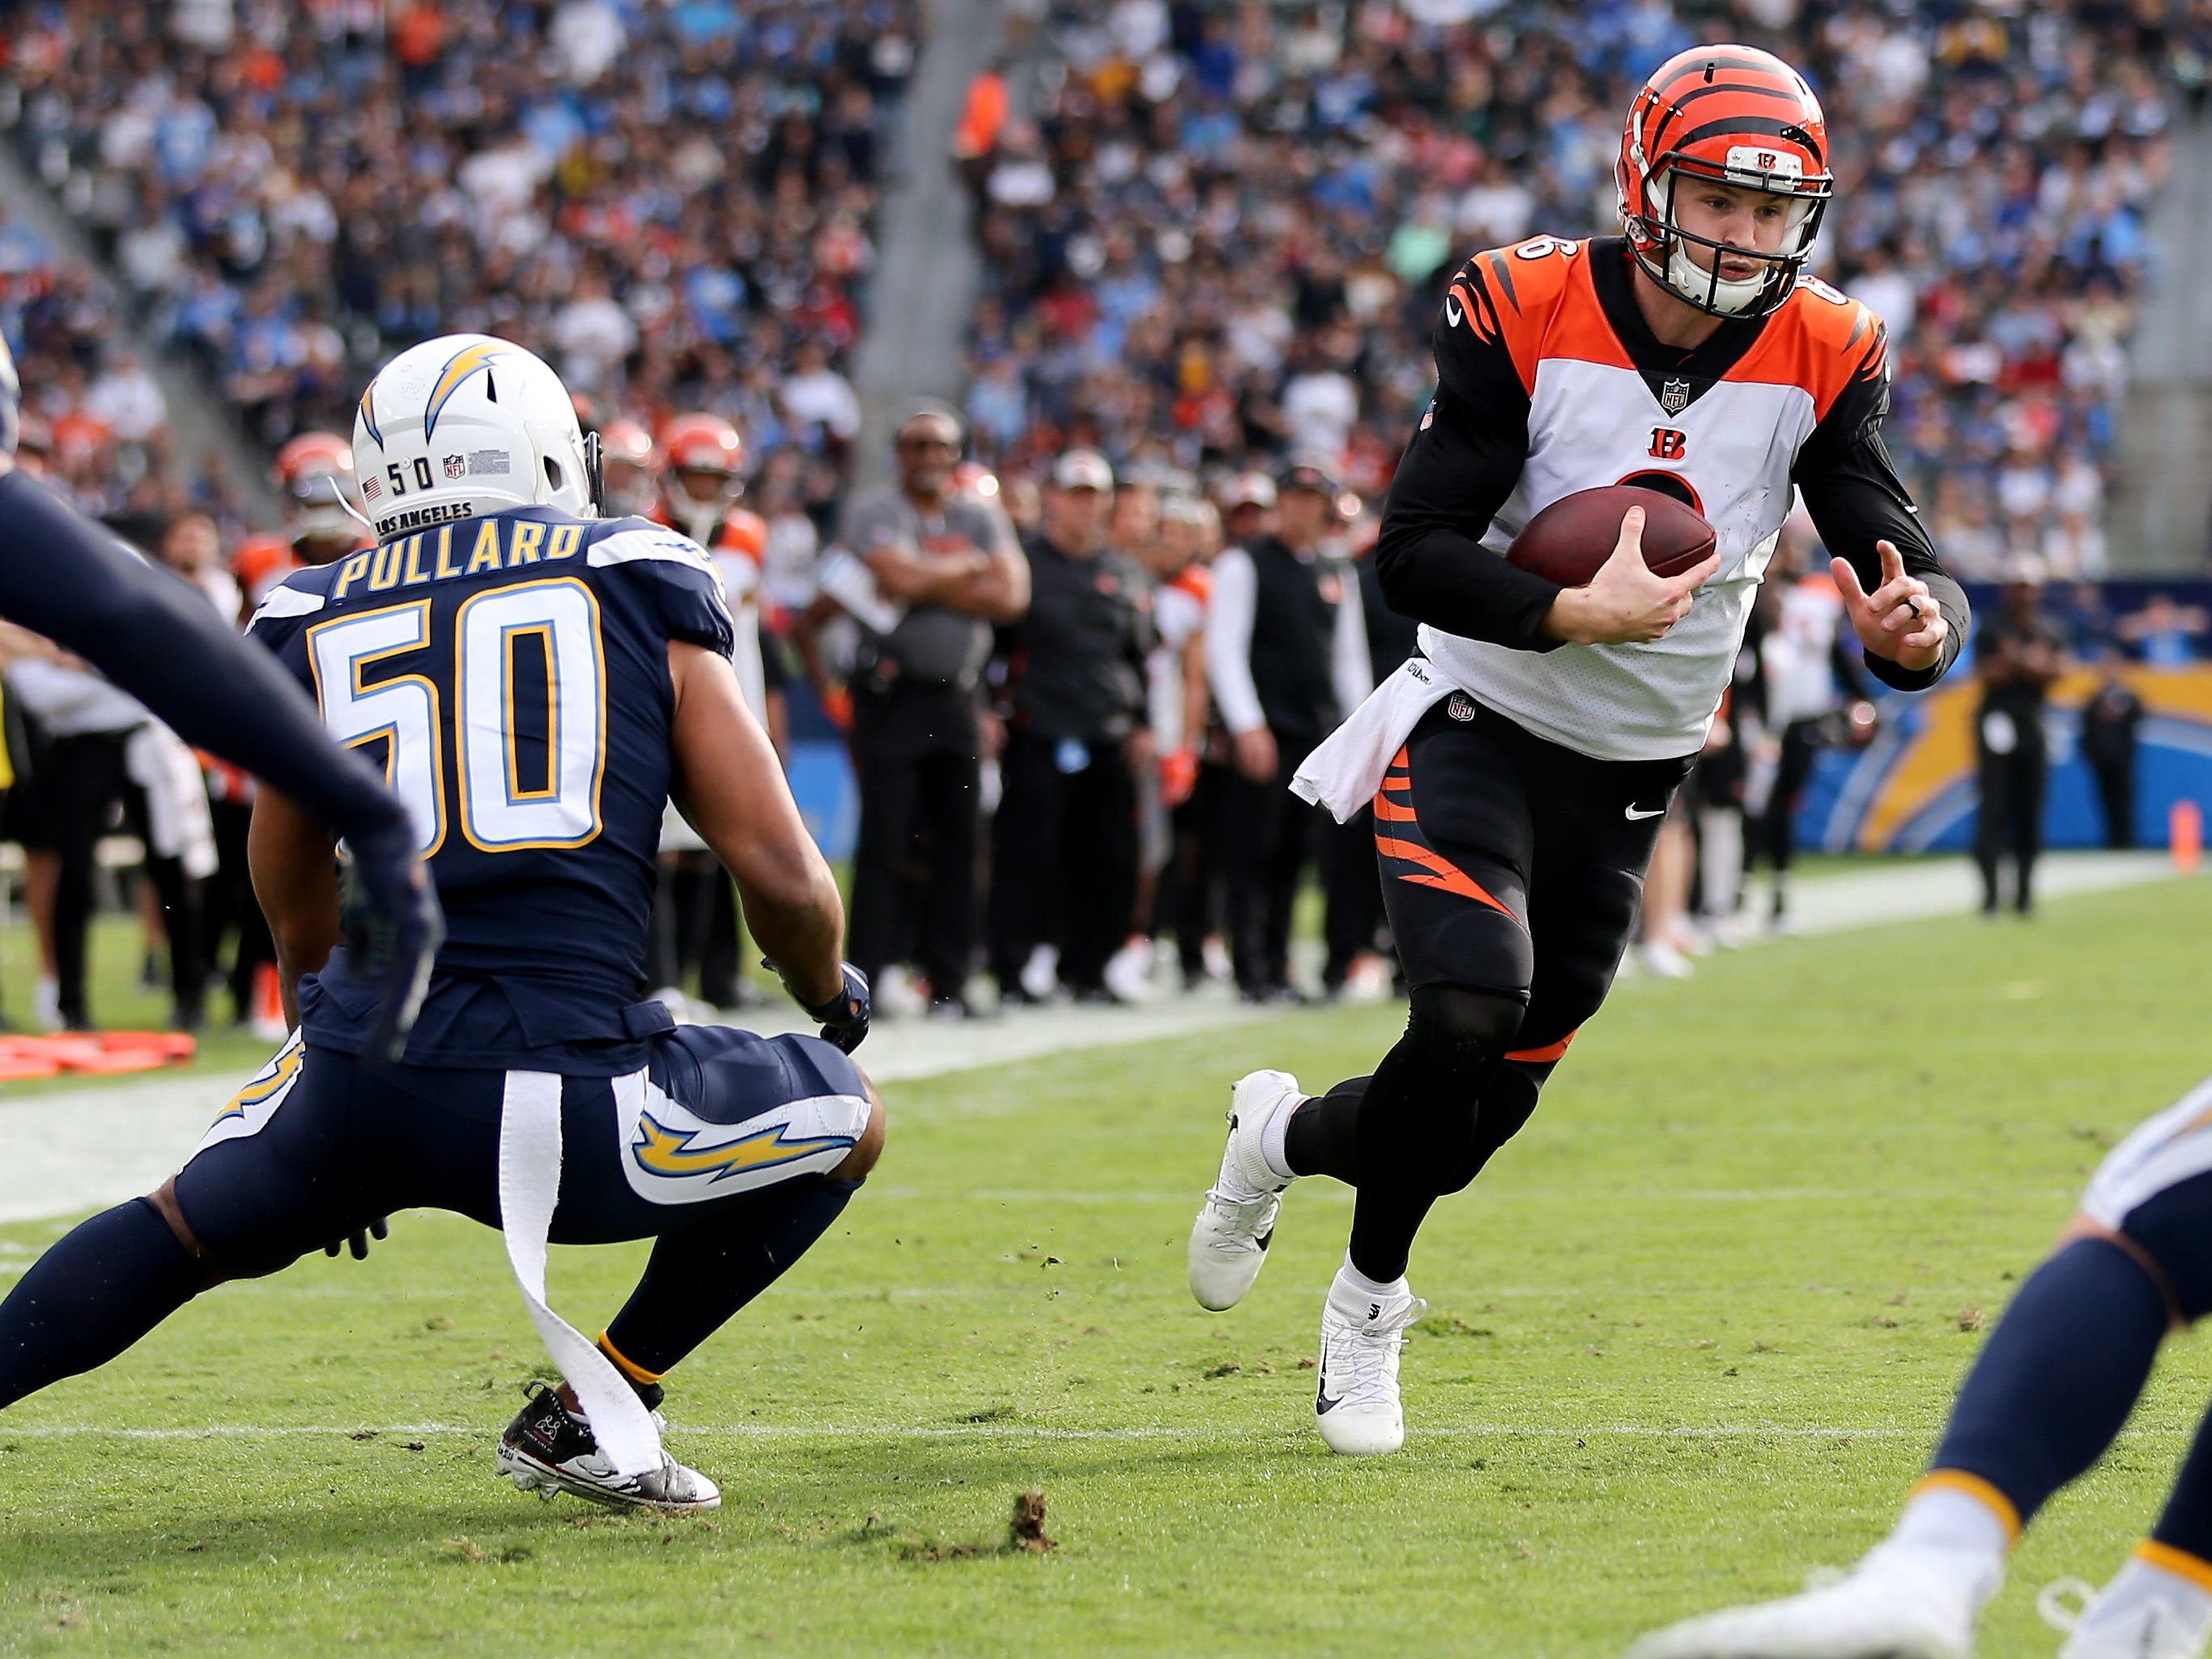 Cincinnati Bengals quarterback Jeff Driskel (6) runs for the end zone but was short of a touchdown in the second quarter of a Week 14 NFL football game against the Los Angeles Chargers, Sunday, Dec. 9, 2018, at StubHub Center in Carson, California.